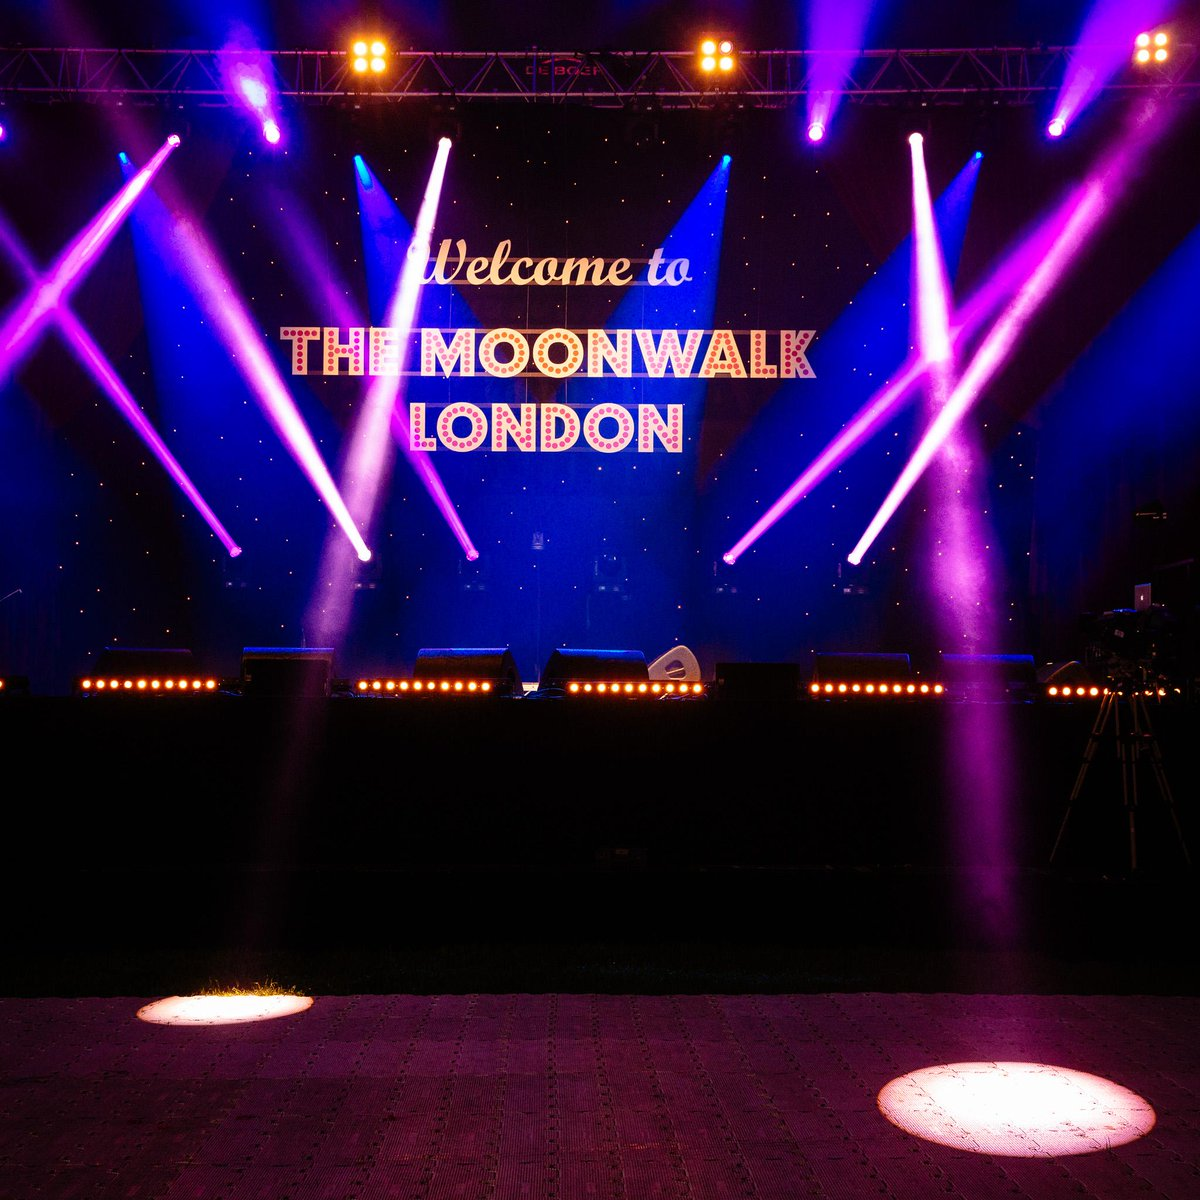 No more sleeps! OMG it's finally here!... can you believe it!...  ARE WE ALL READY? IT'S MOONWALK DAY! #MoonWalk2015 http://t.co/jNNetN1JQi